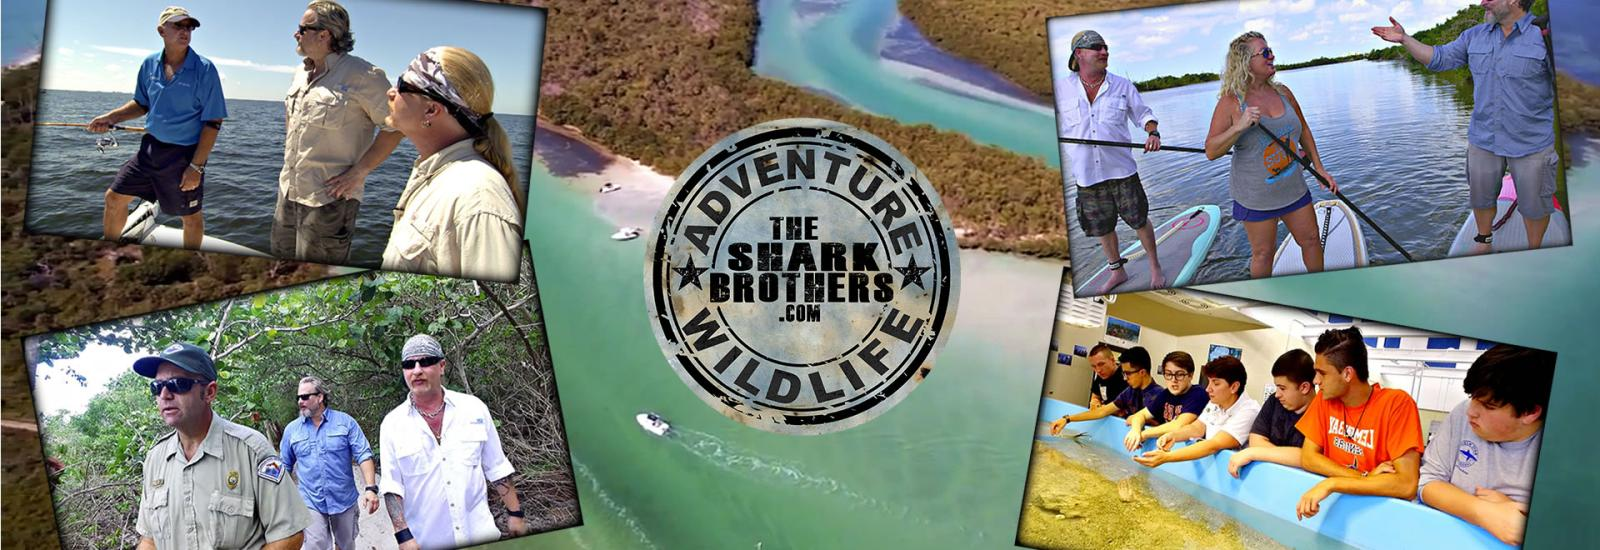 Adventure & Wildlife hosted by the Shark Brothers